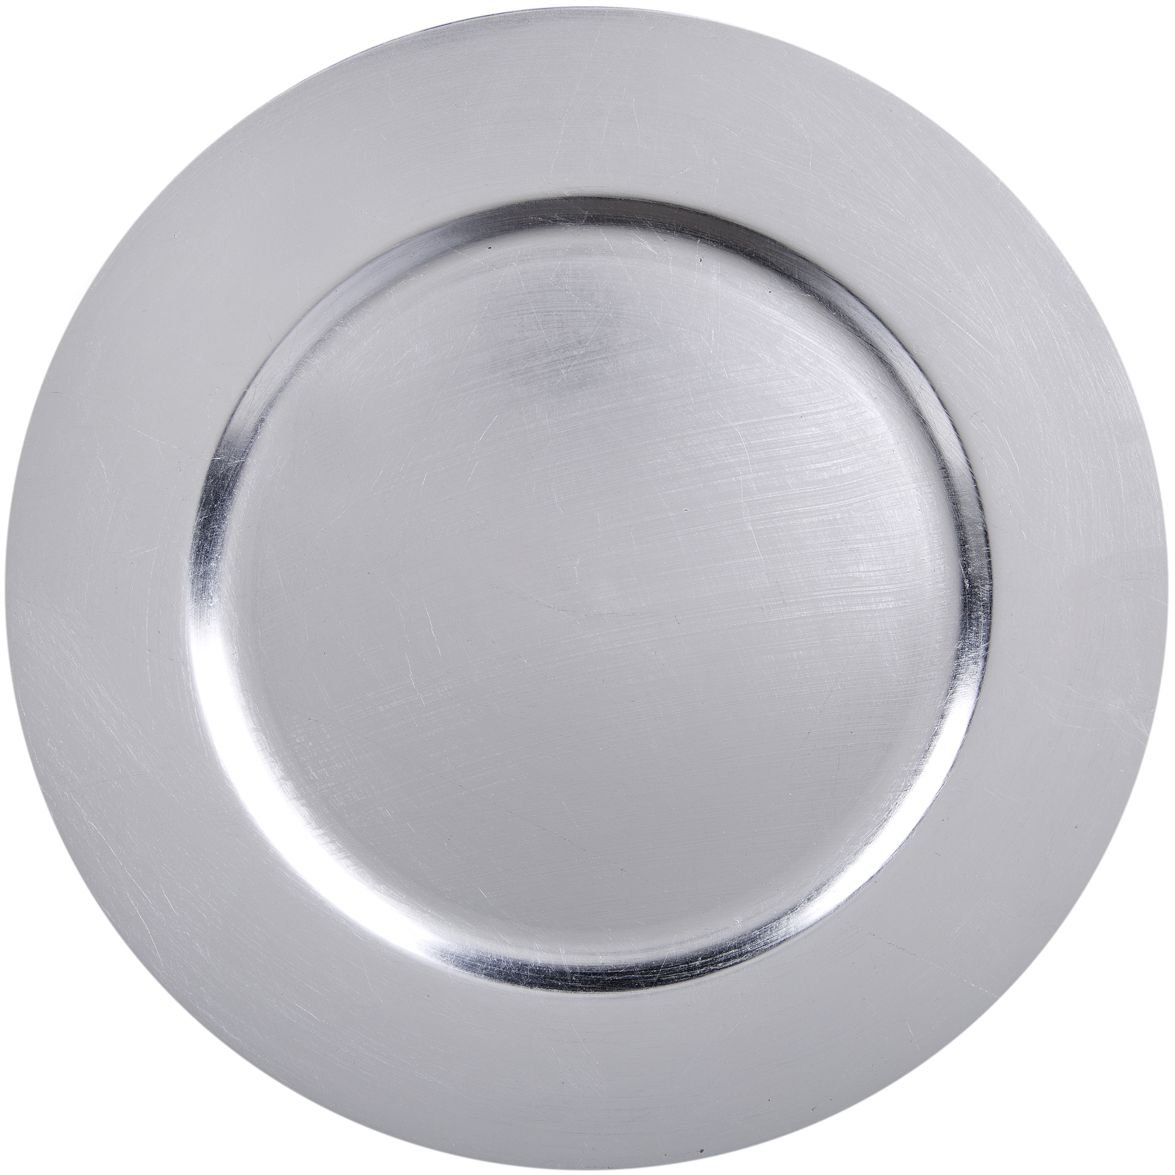 Palais Dinnerware 'Plaque De Charge' Collection - 13'' Elegent Charger Plate (12, Silver Leaf)